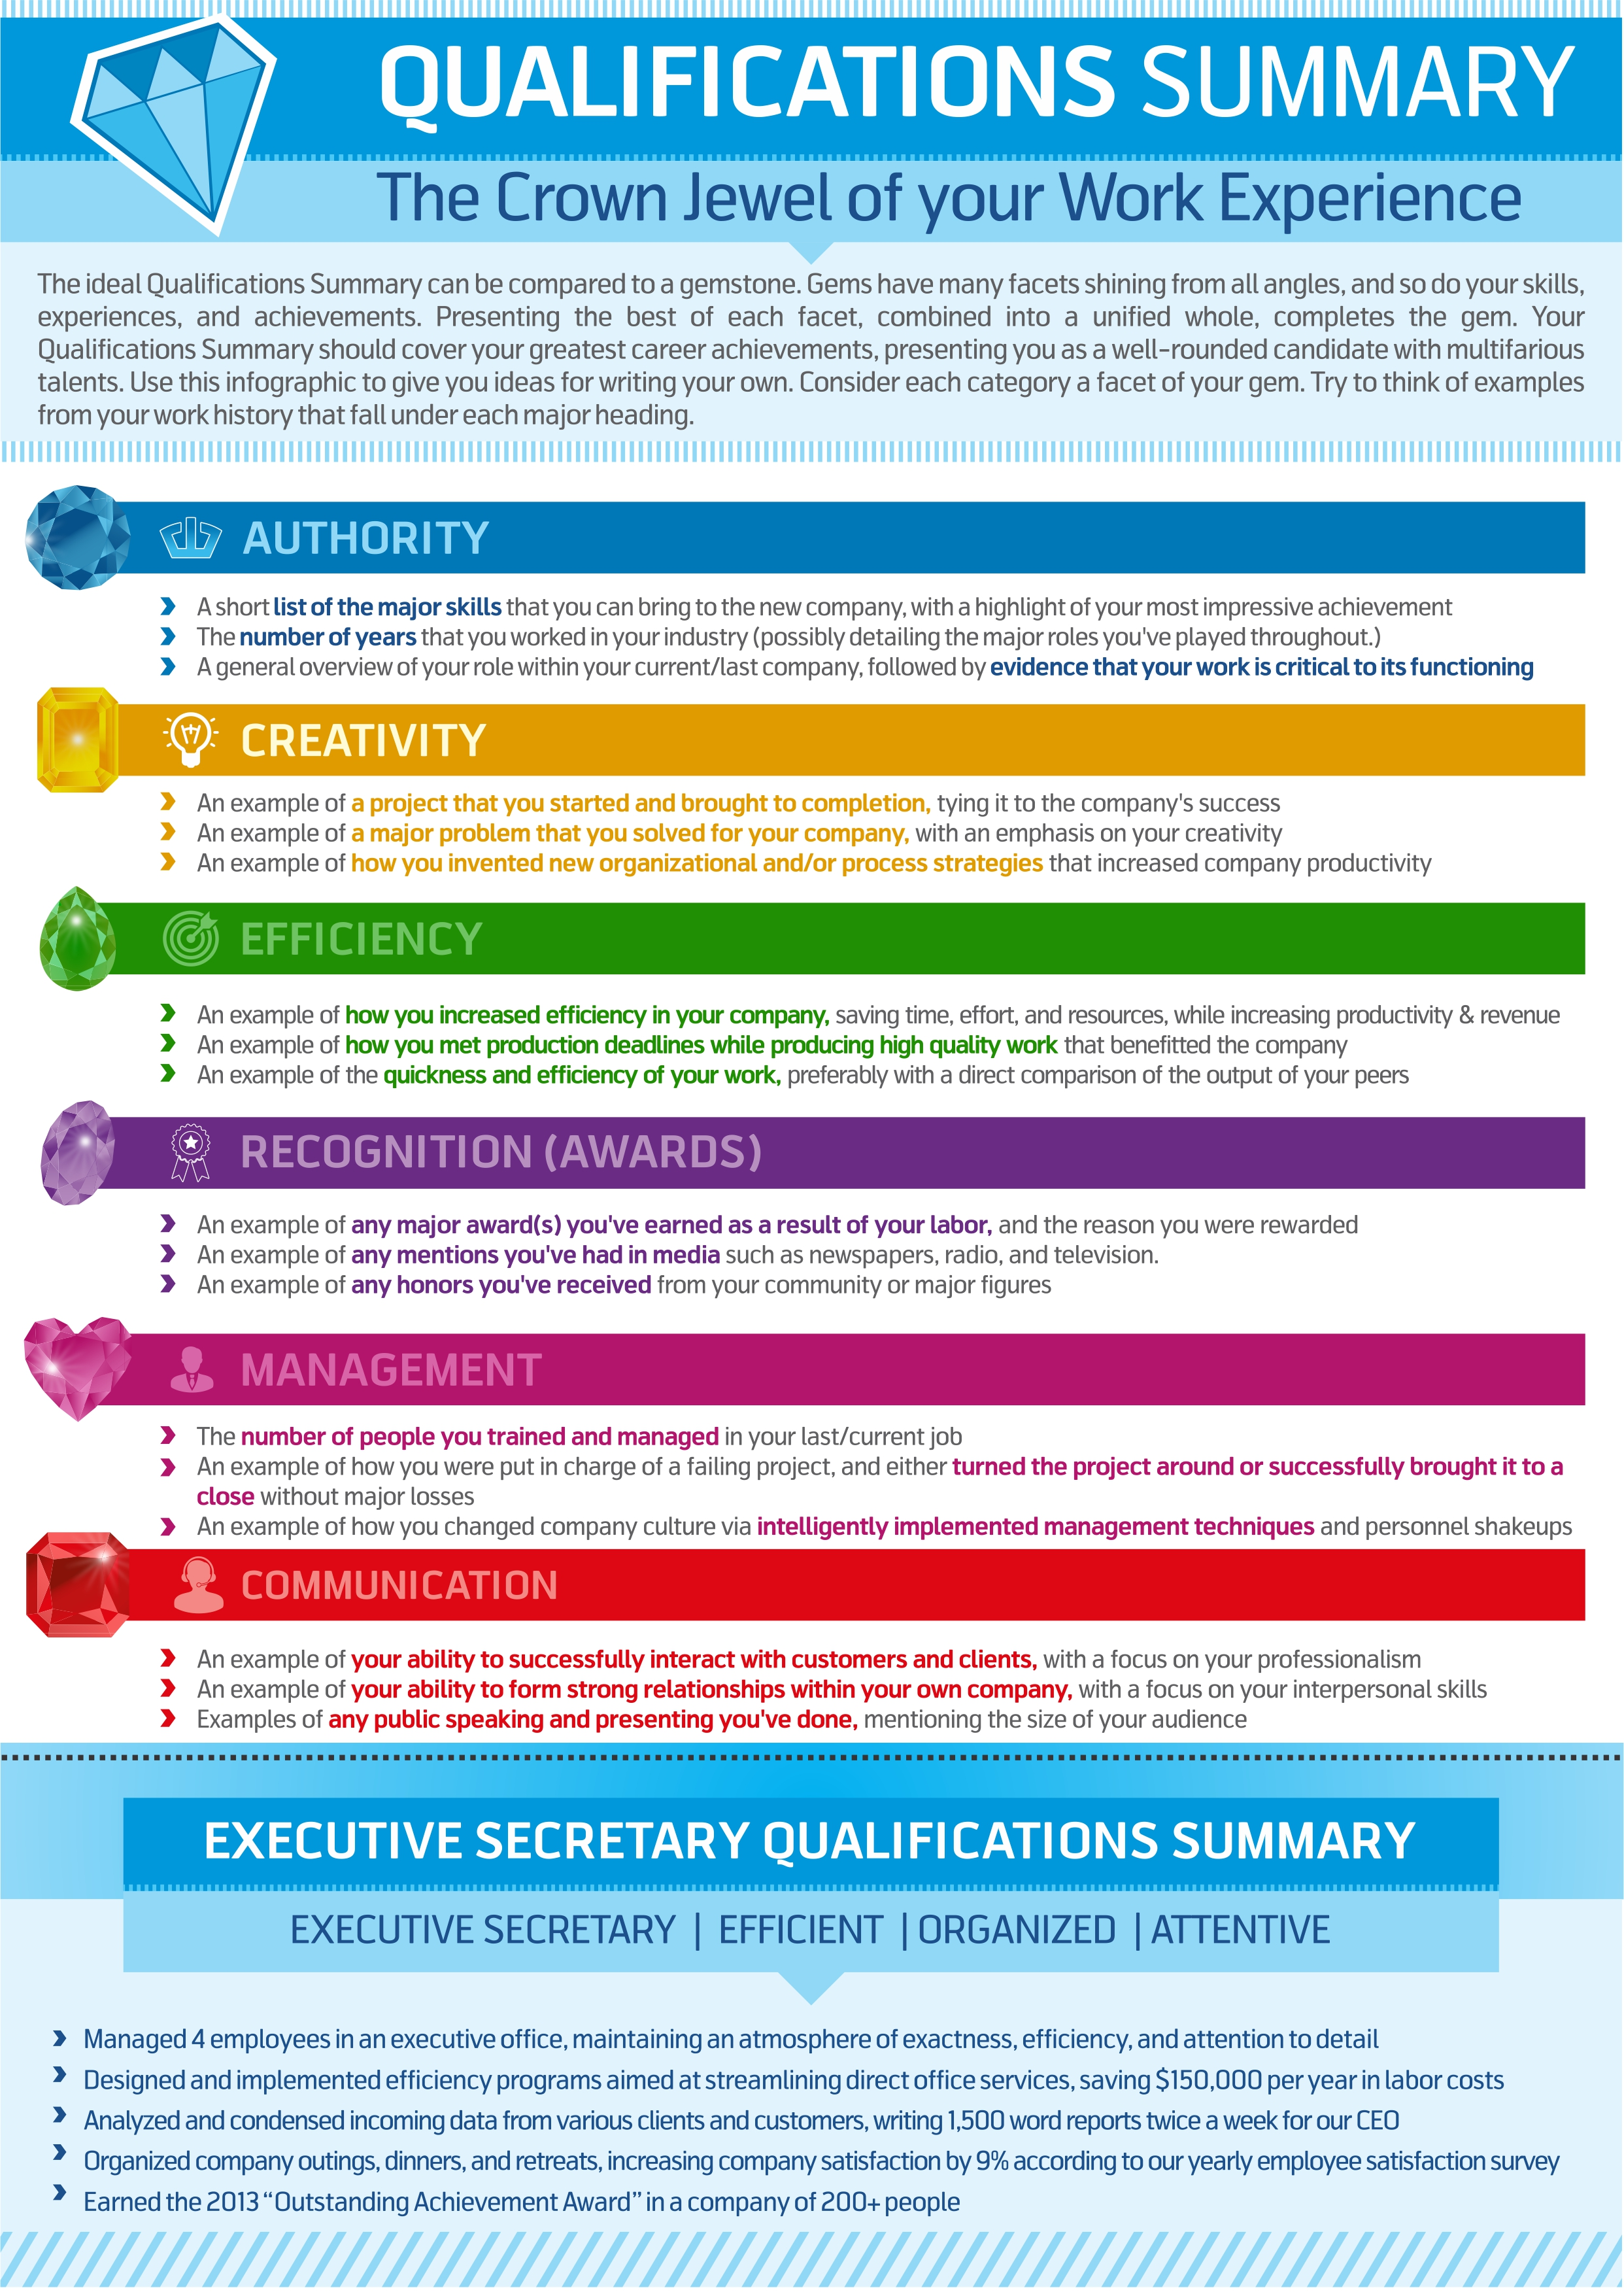 High Quality Qualifications Summary Infographic Intended Skills And Qualifications Examples